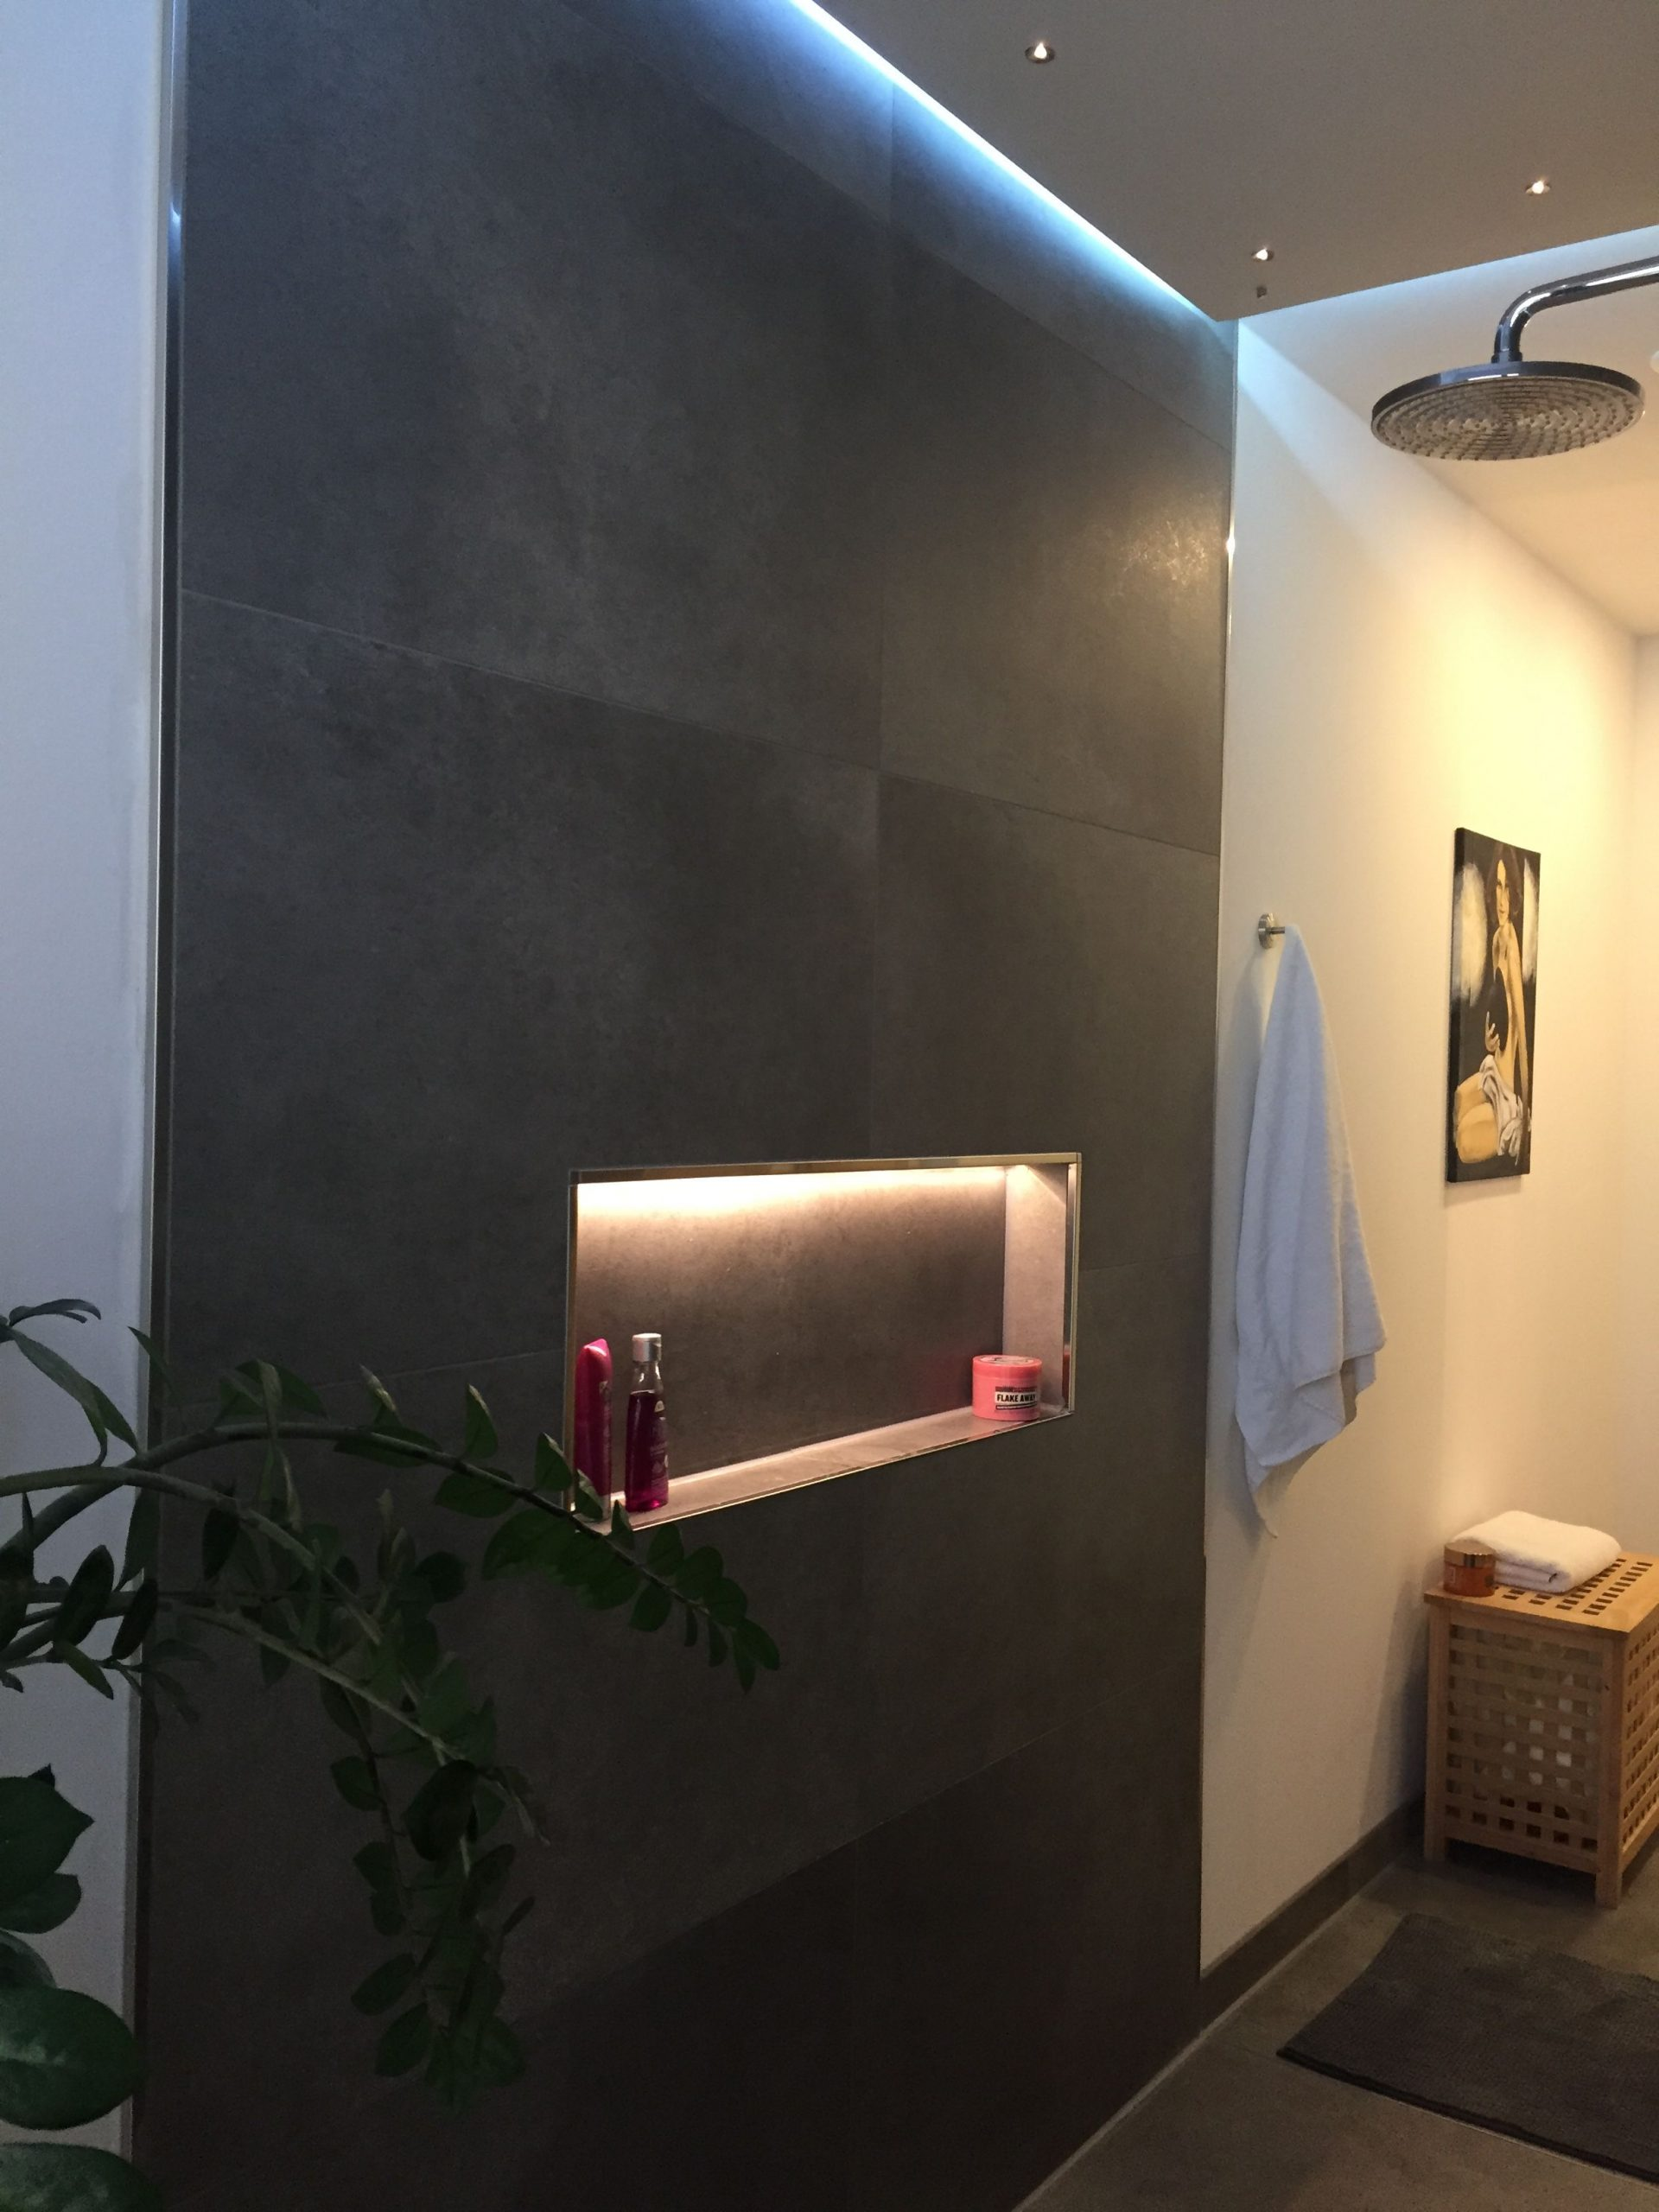 Full Size of Led Beleuchtung Wohnzimmer Tipps Led Beleuchtung Wohnzimmer Ideen Led Beleuchtung Wohnzimmer Indirekt Wohnzimmer Beleuchtung Led Leiste Wohnzimmer Led Beleuchtung Wohnzimmer